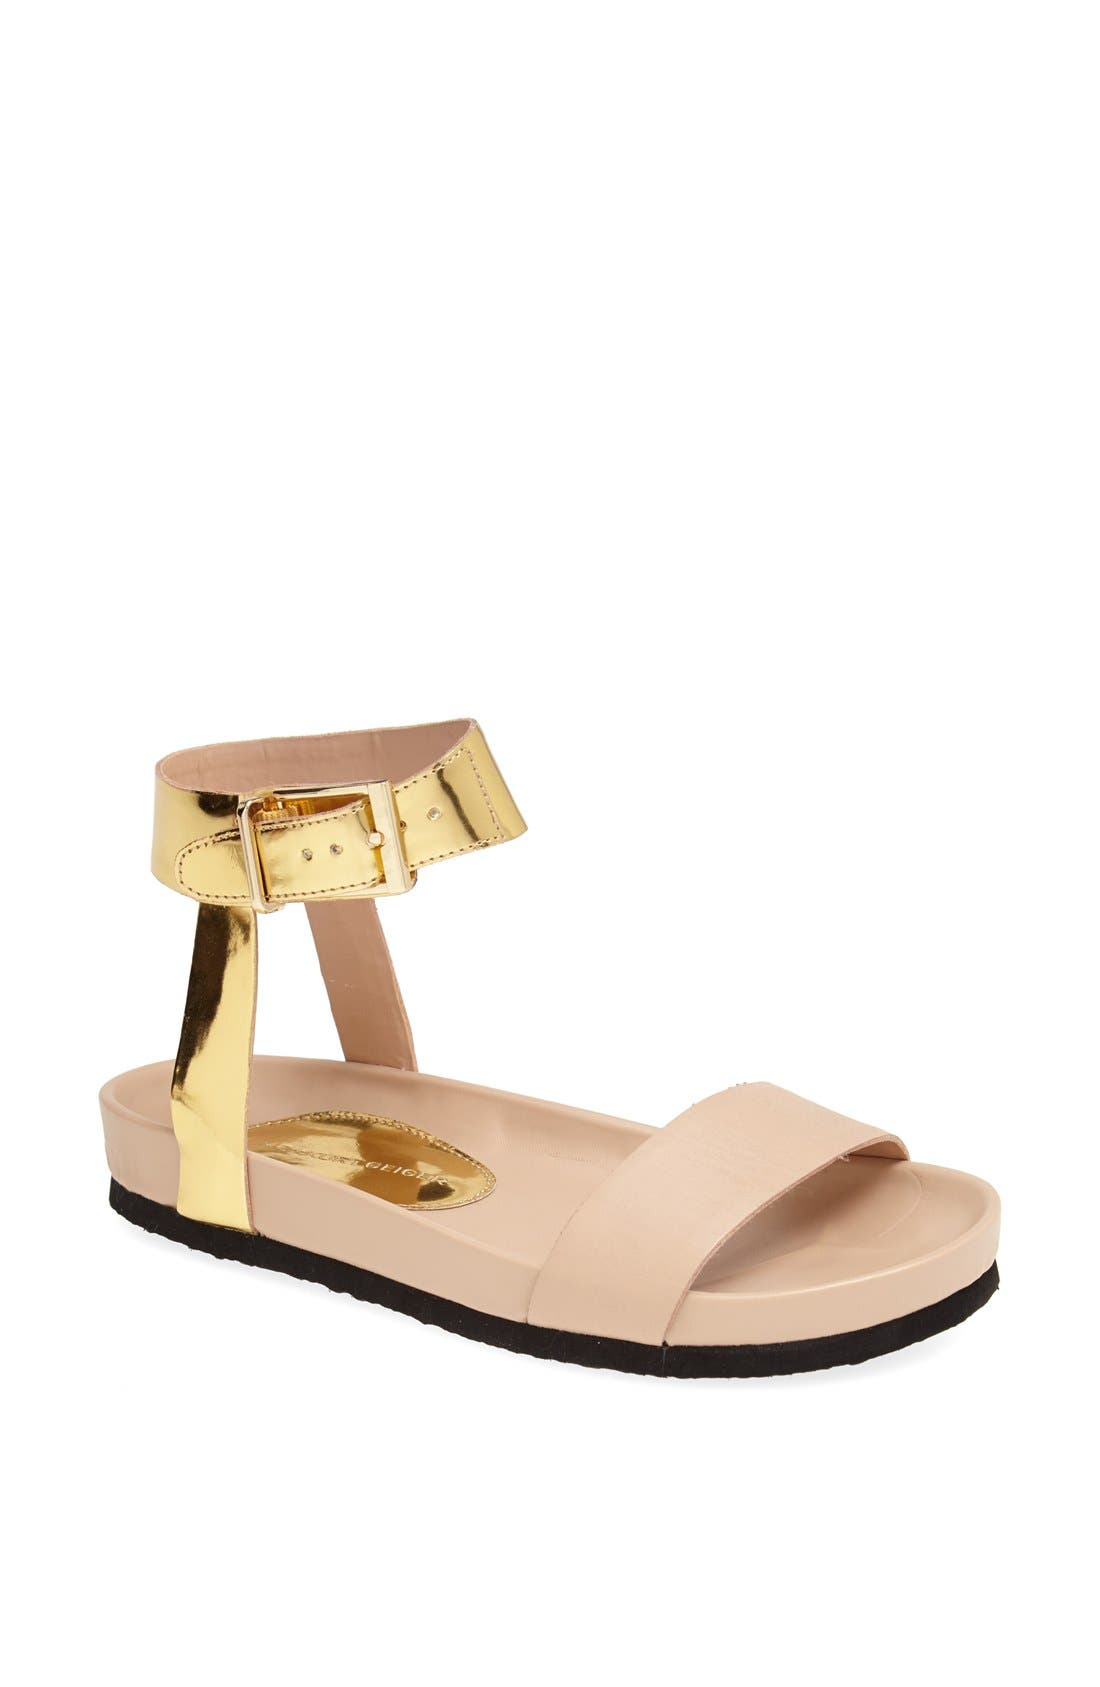 Alternate Image 1 Selected - KG Kurt Geiger 'Marissa' Sandal